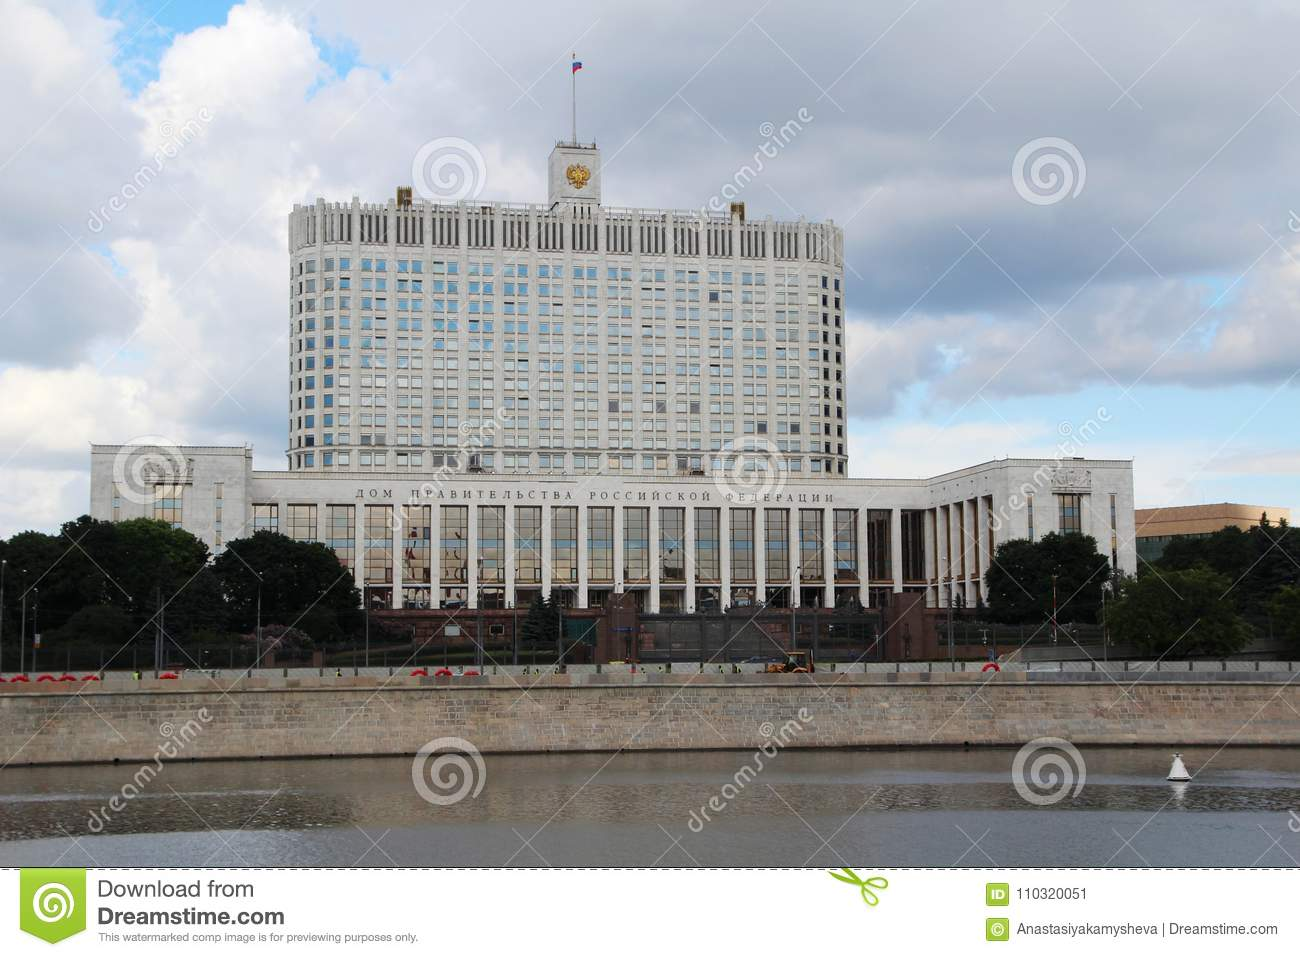 La maison blanche le parlement moscou photo stock image du